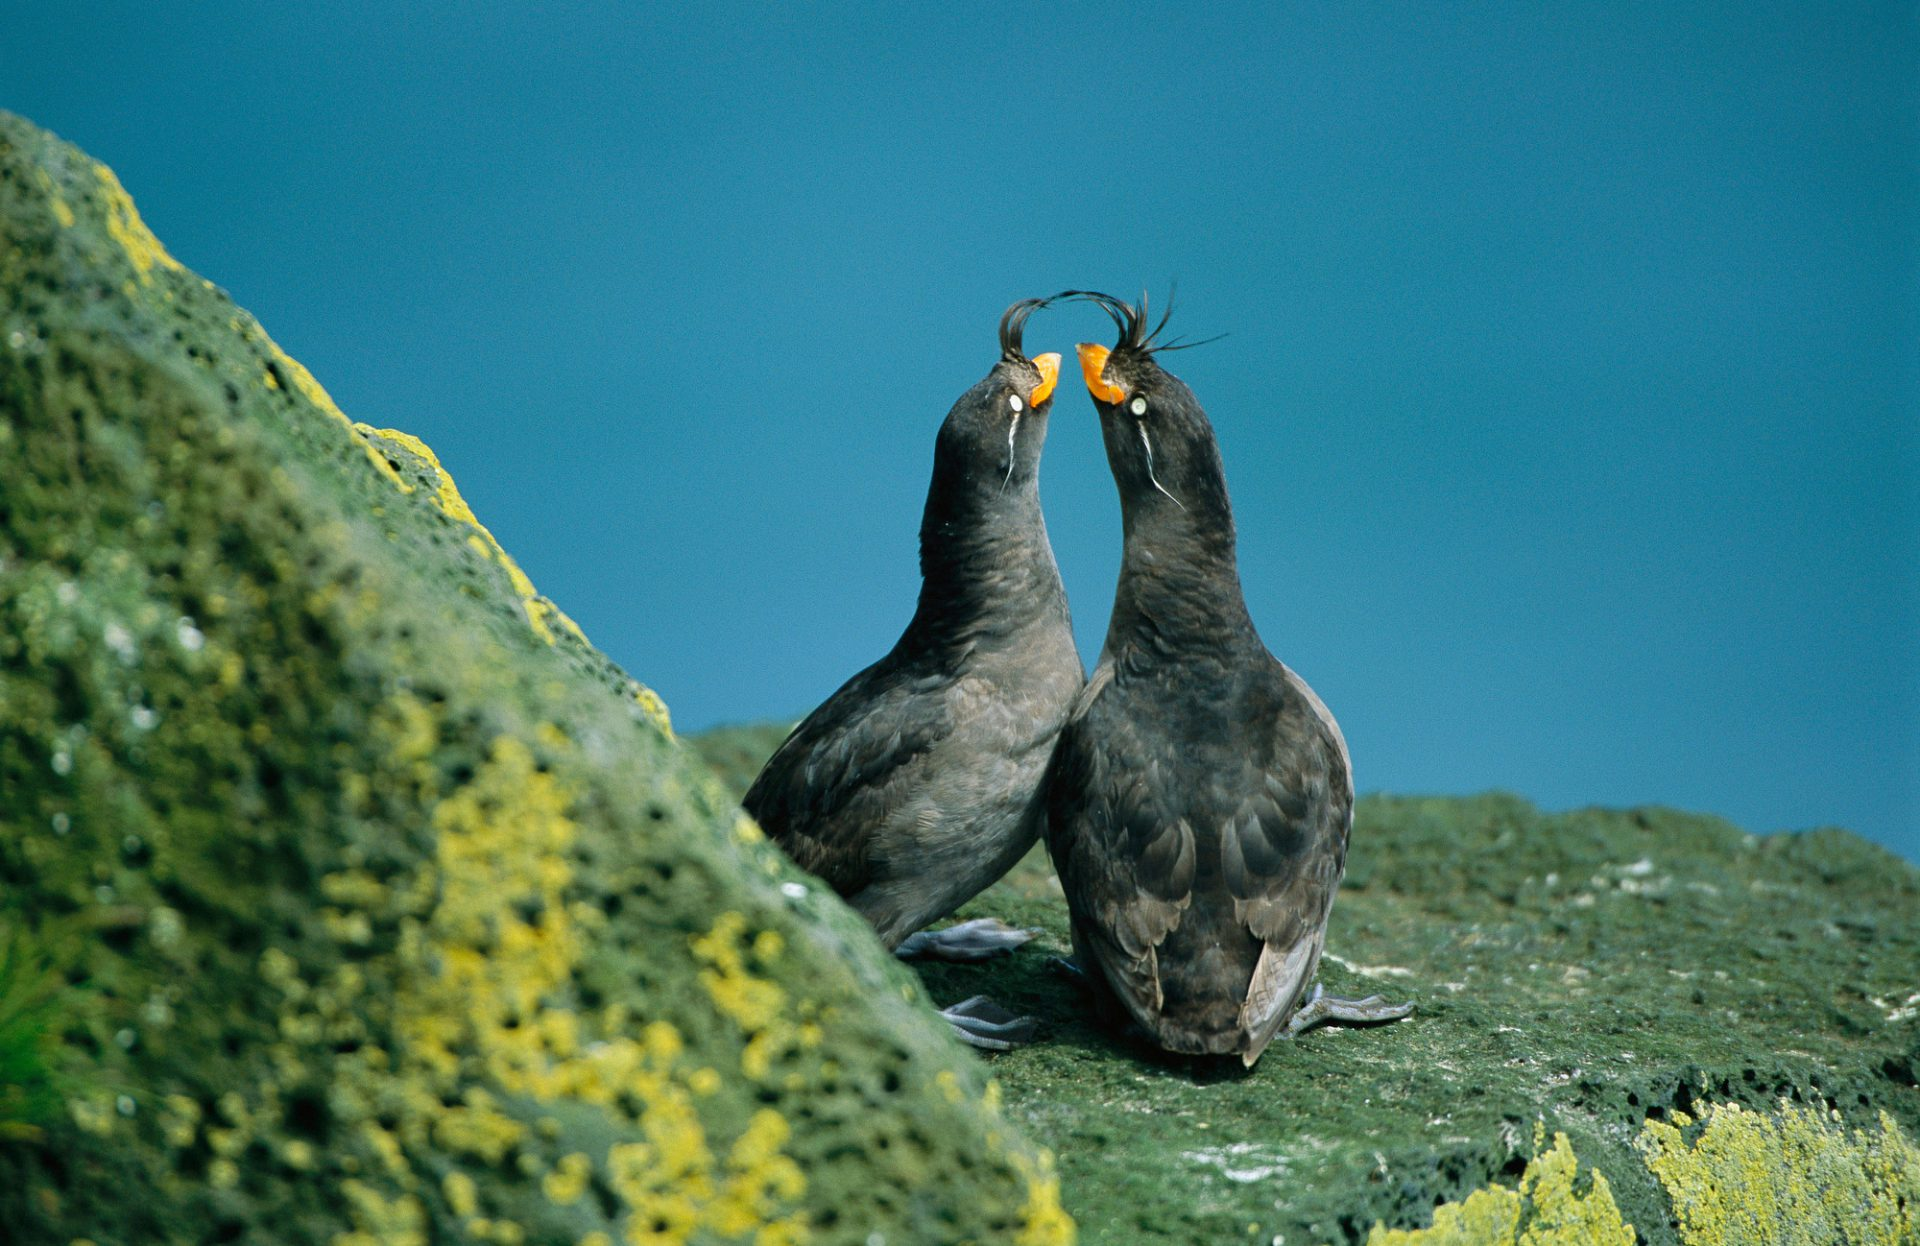 A pair of crested auklets (Aethia cristatella) in their breeding plumage.